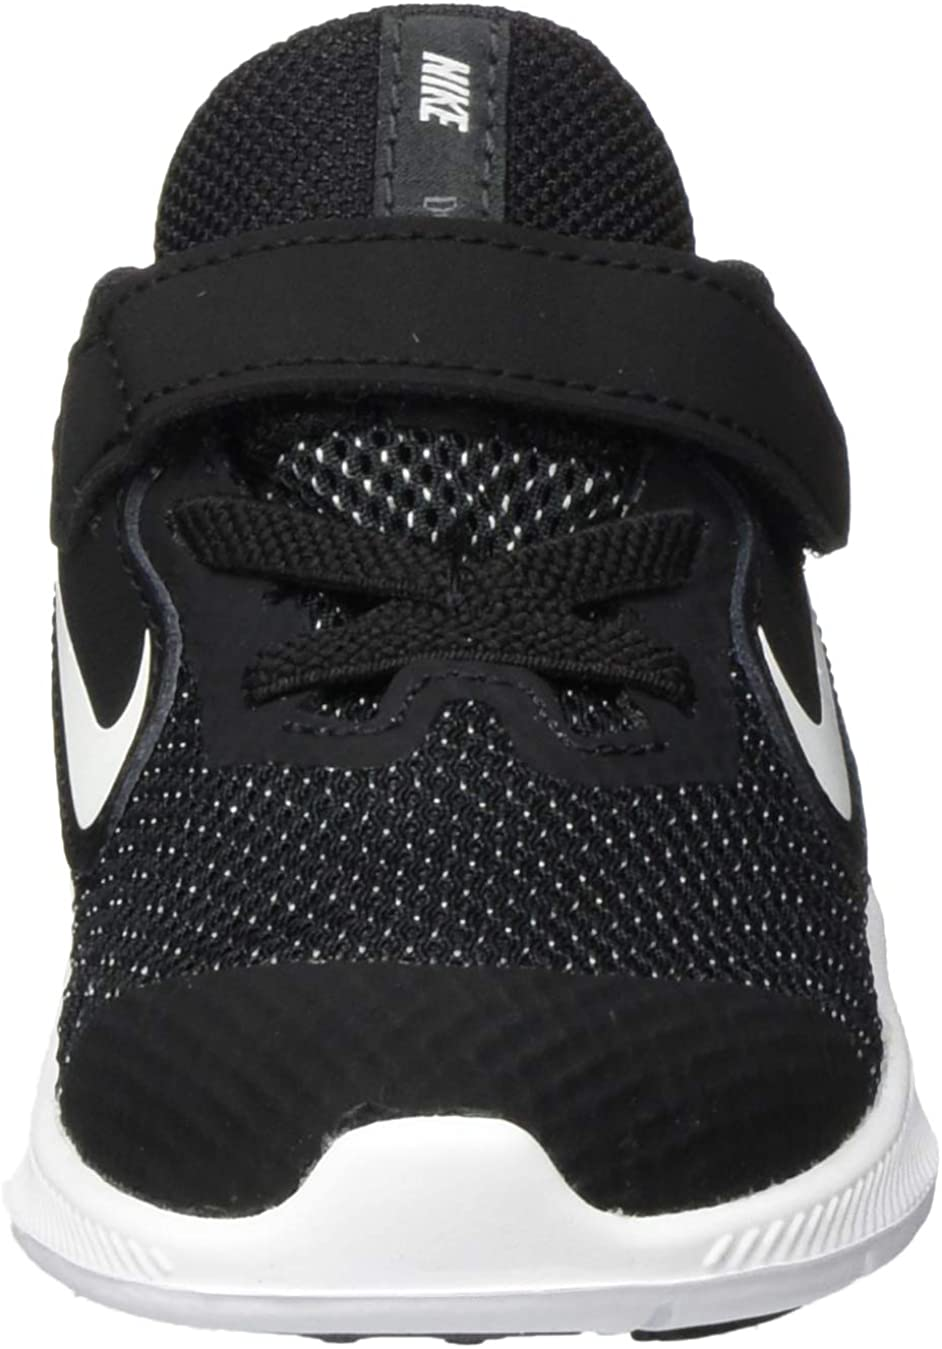 Black//White//Anthracite//Cool Grey 25 EU Walking Shoe Unisex-Baby Nike Downshifter 9 TDV